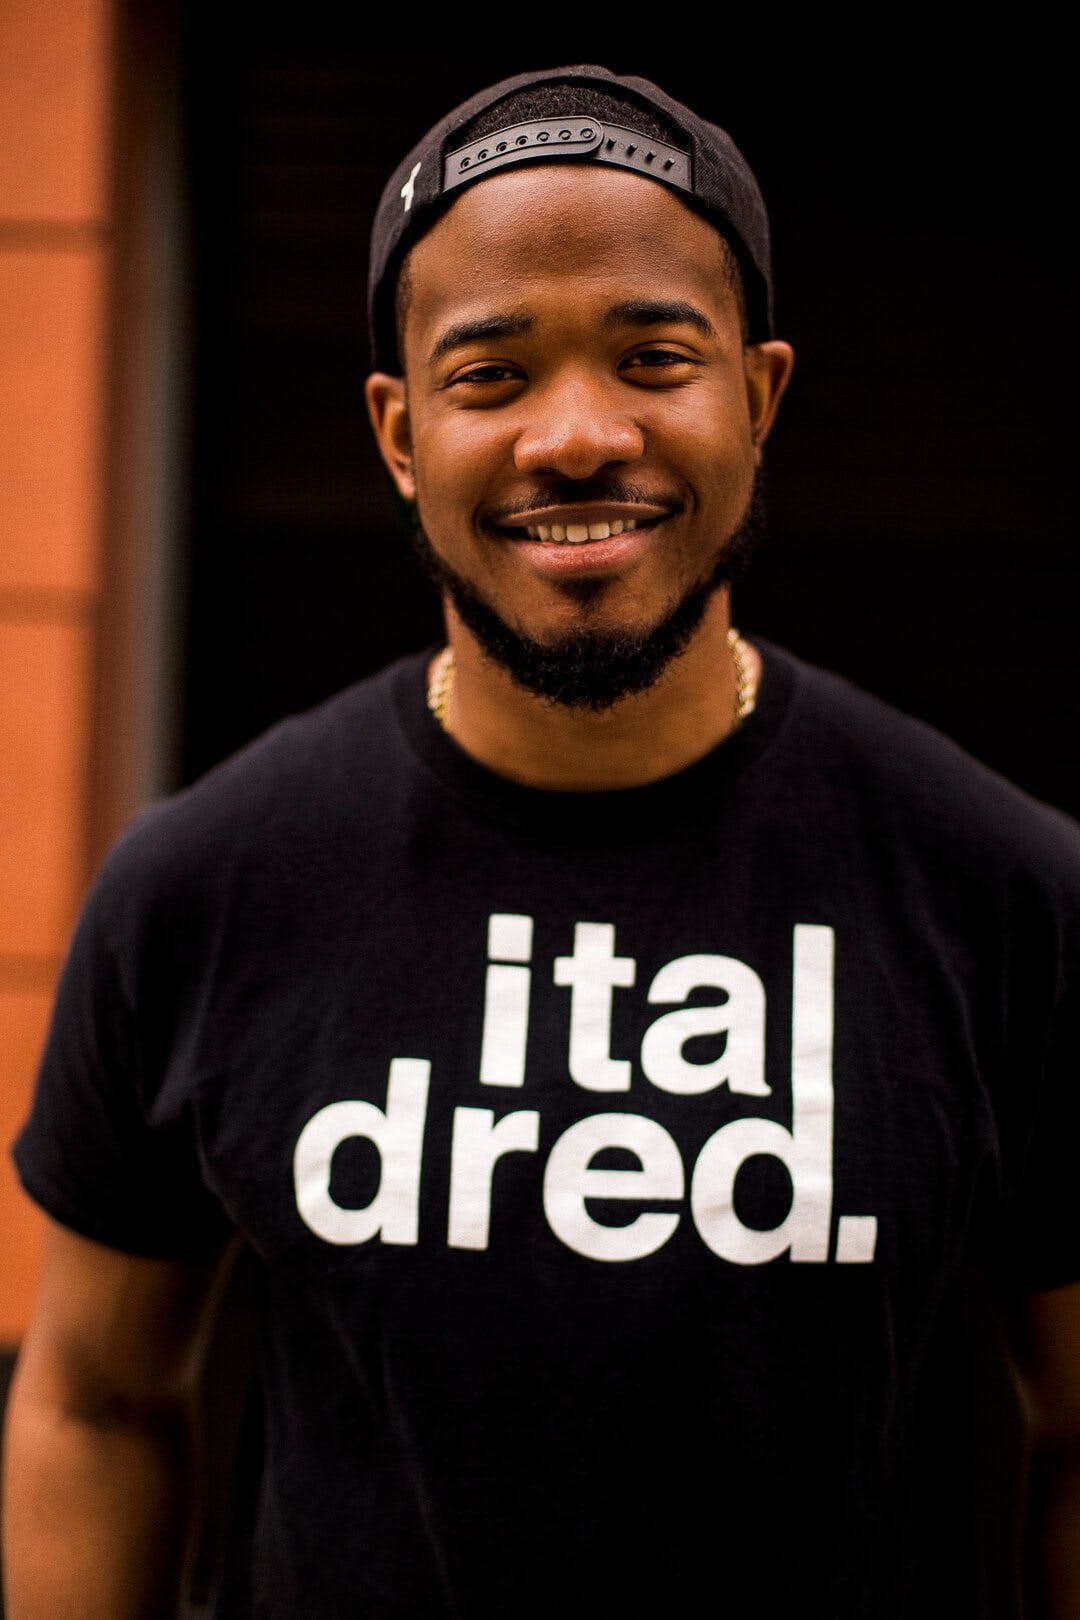 Smiling Man Wearing Black Snapback Cap and Black Crew-neck Shirt